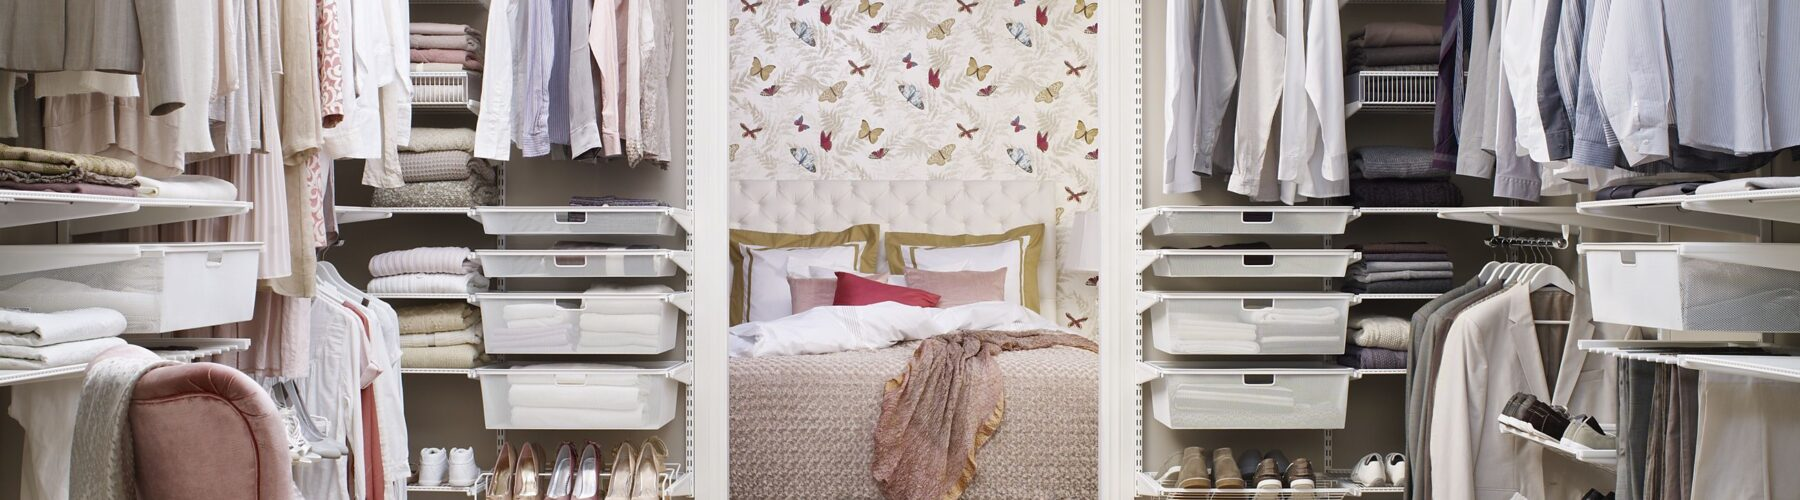 Create A Chic Dressing Room, No Matter the Space Restrictions